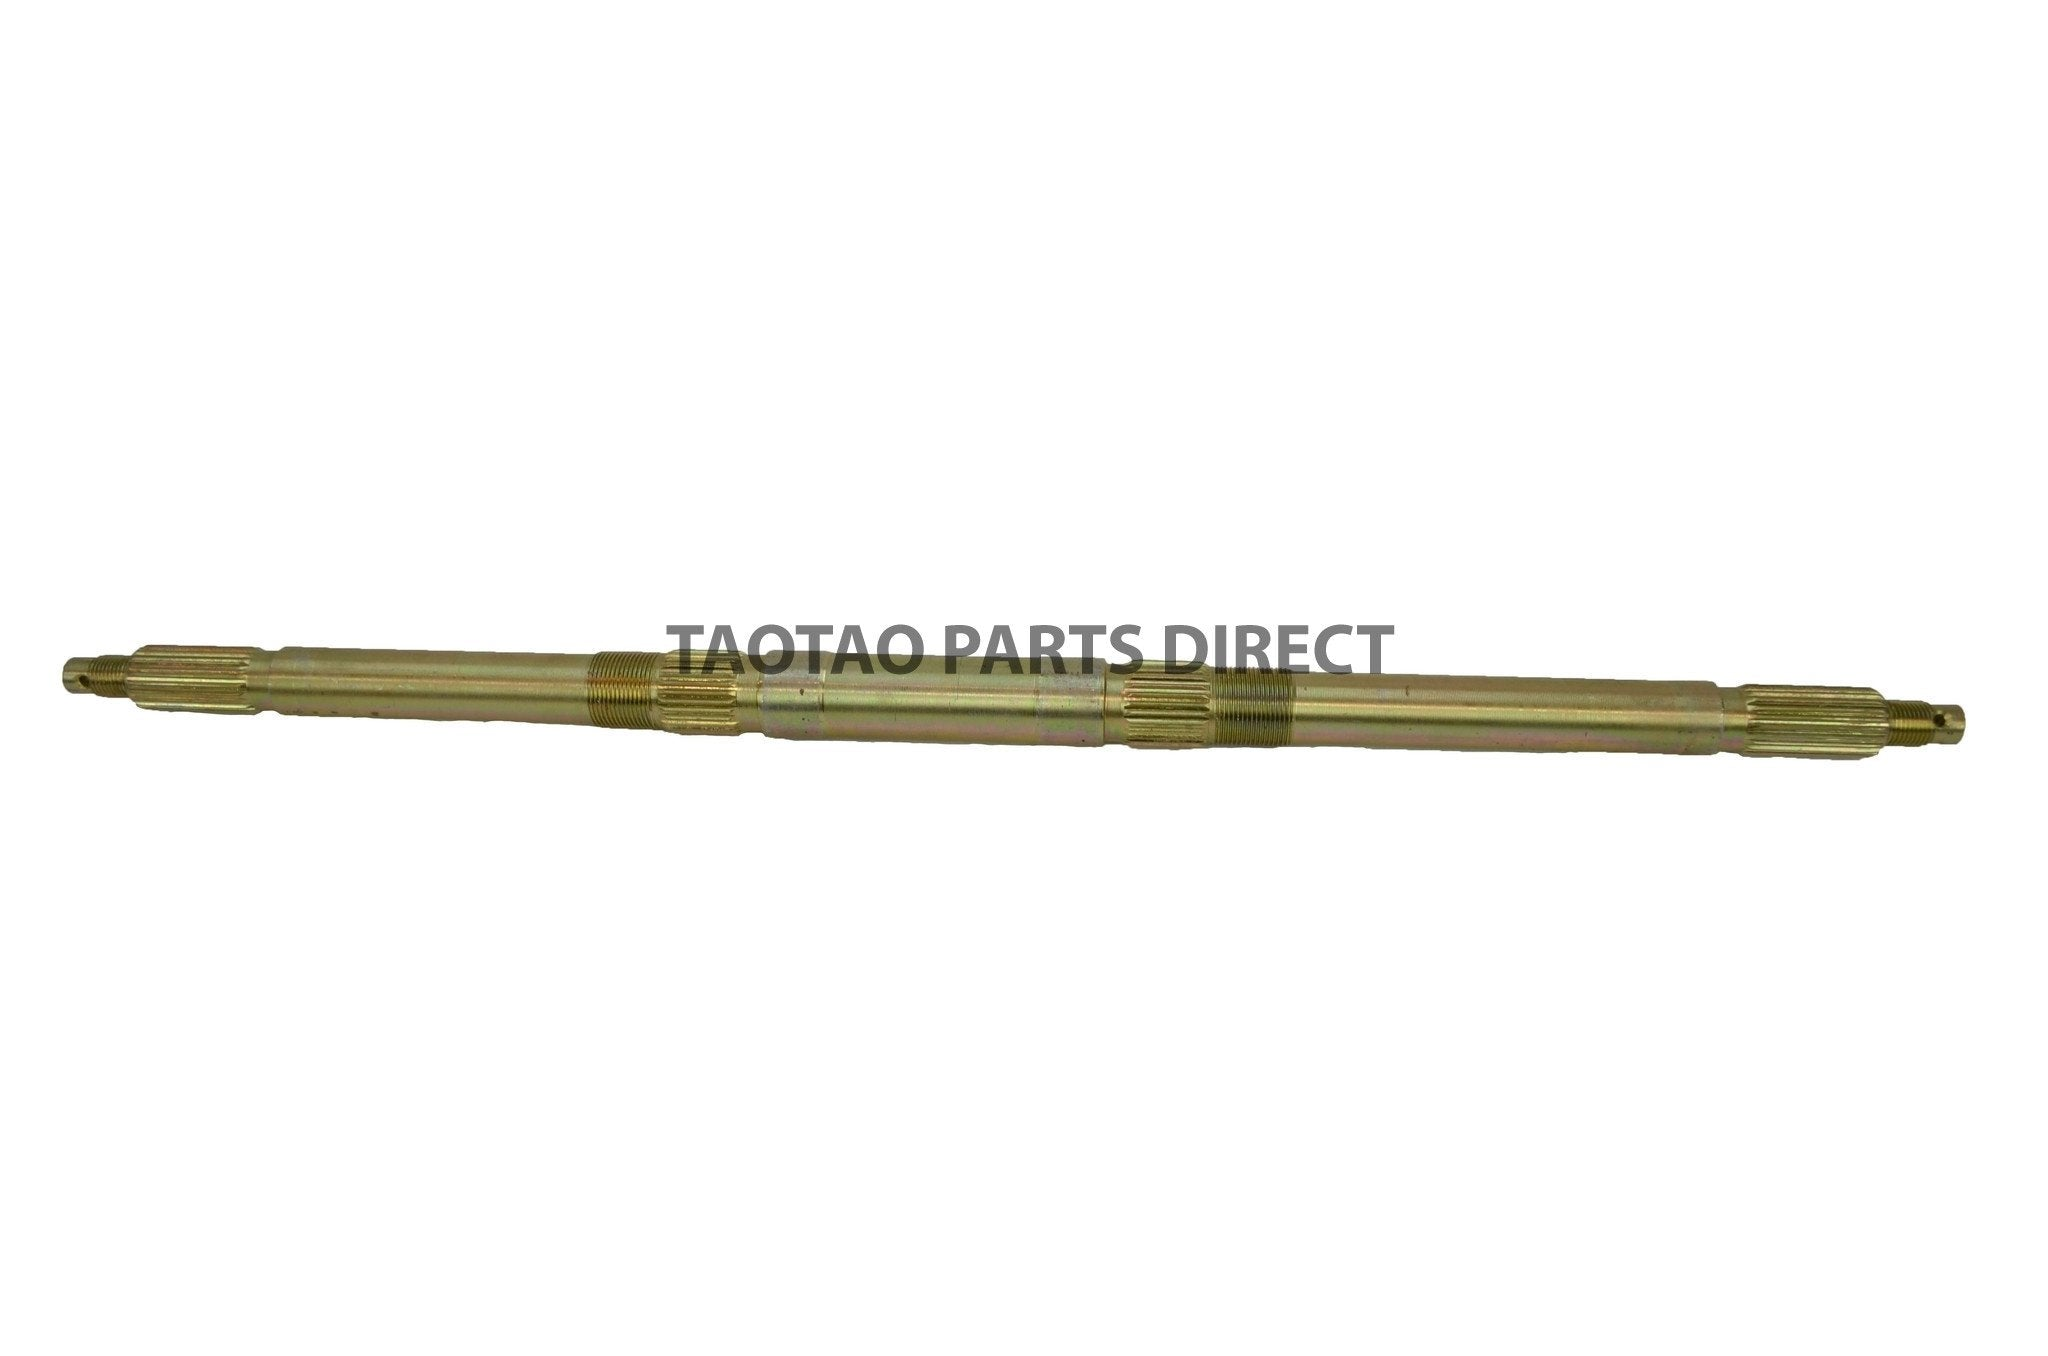 ATA110B Rear Axle - TaoTao Parts Direct